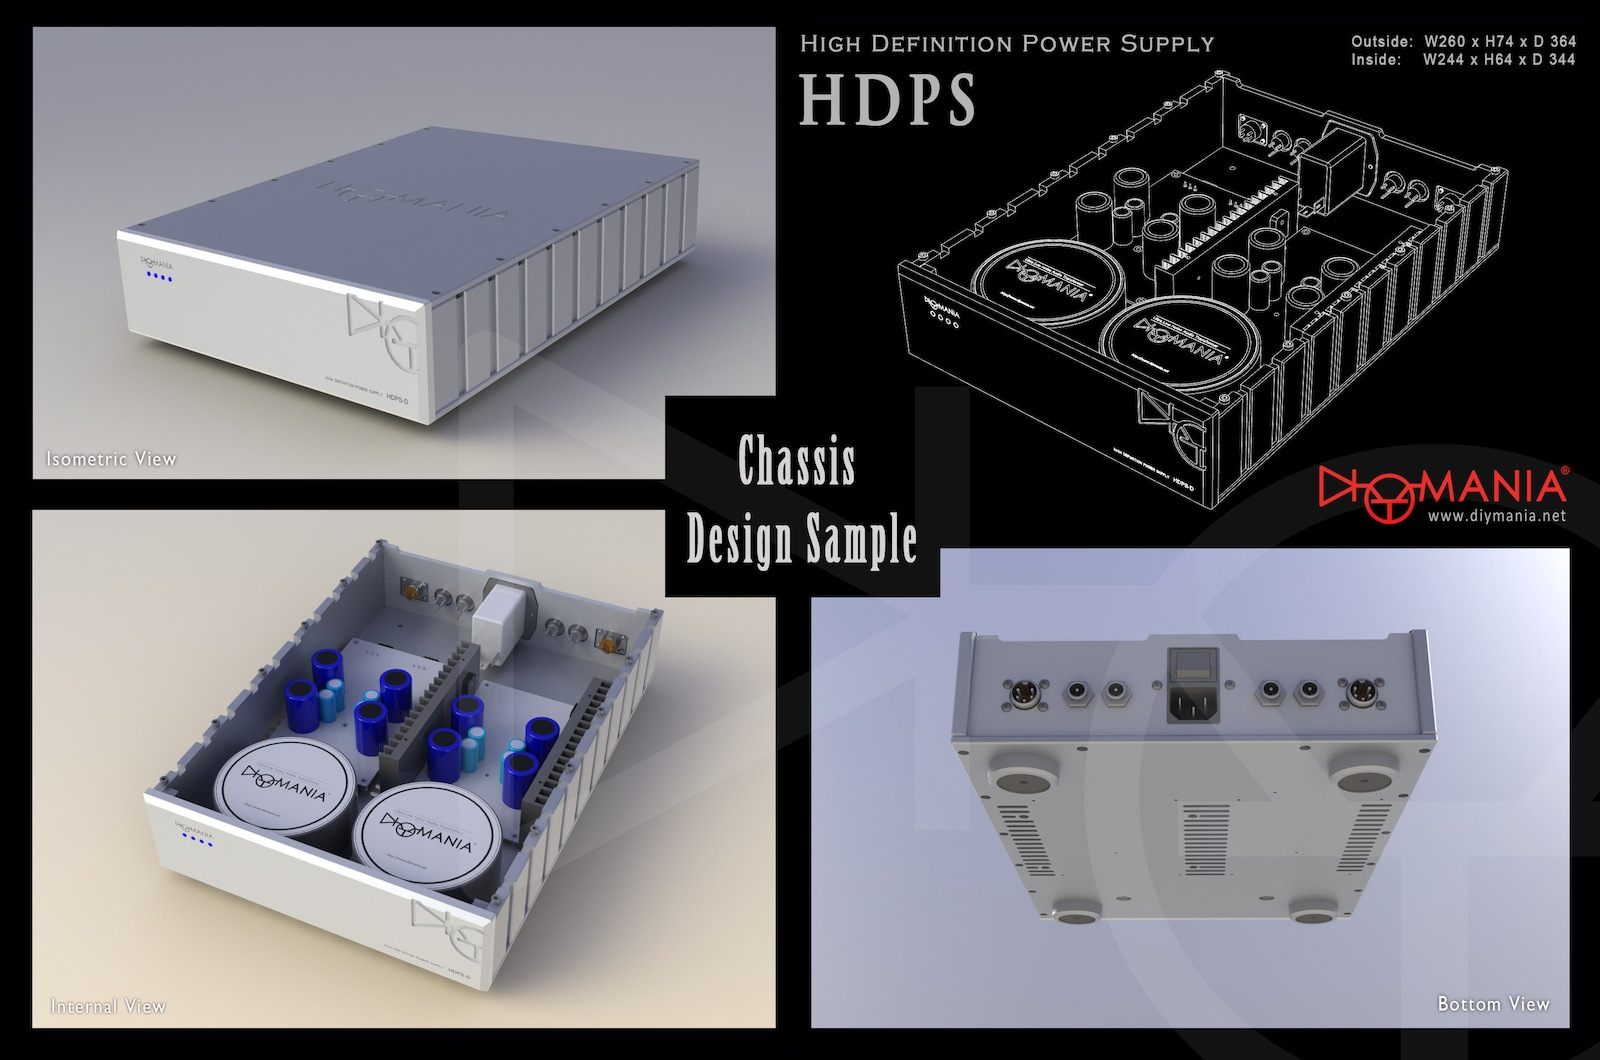 HDPS-Chassis-2-1600x1200.jpg